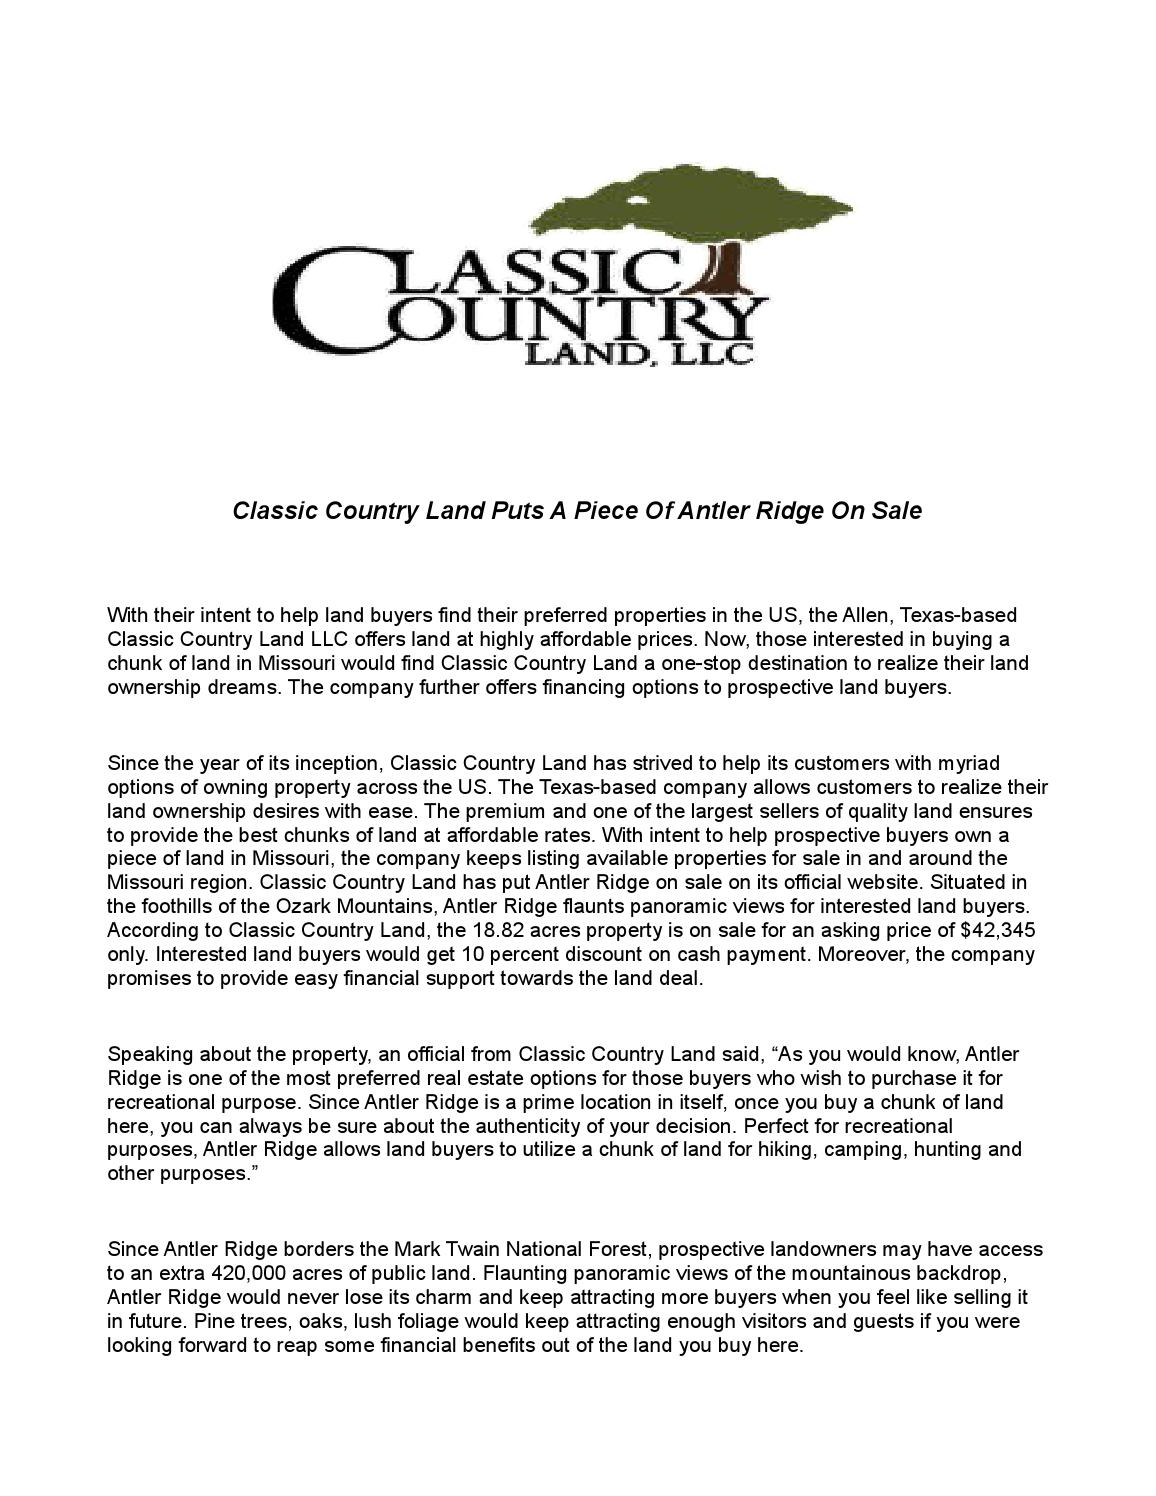 Classicountryland 1 by lori murphy - issuu